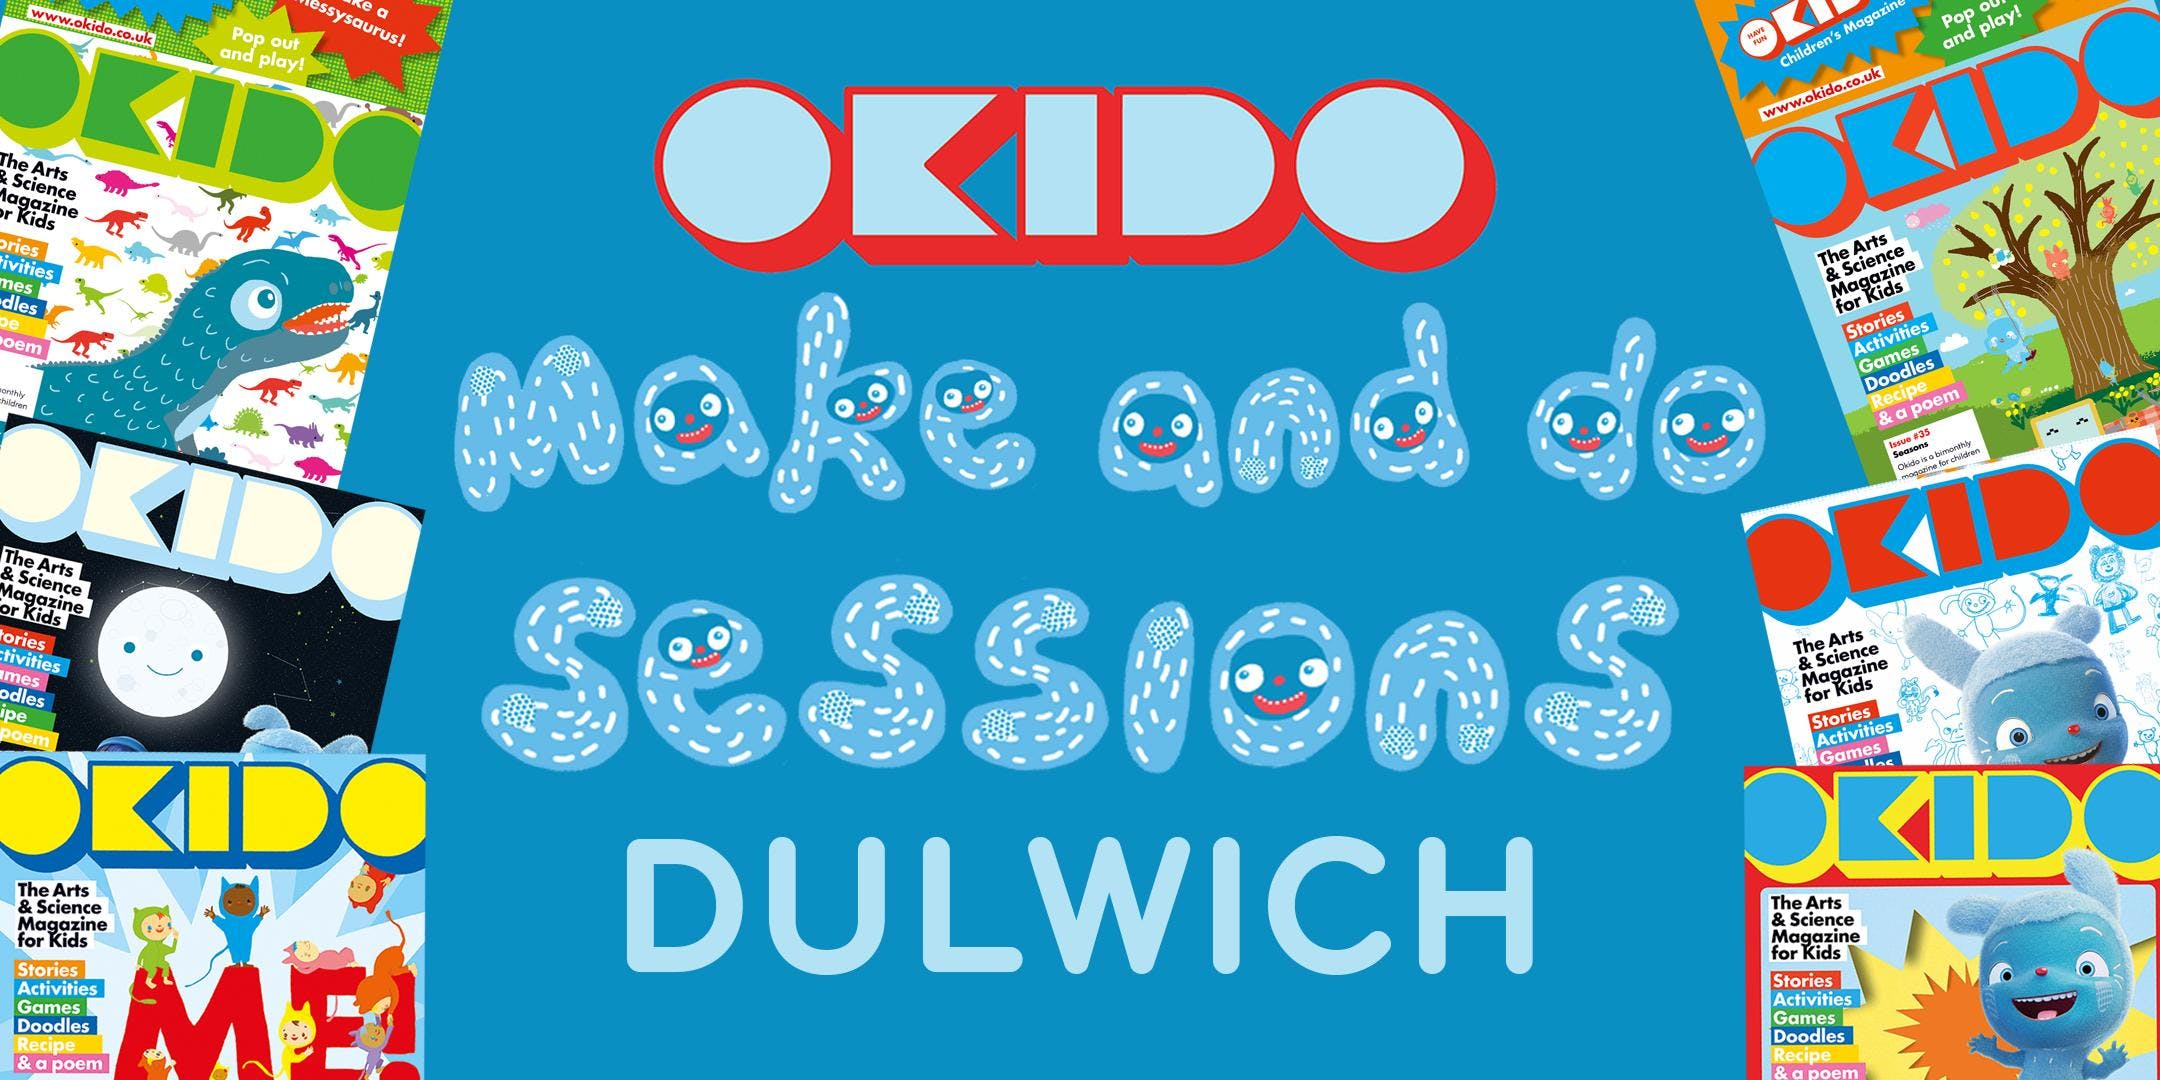 OKIDO MAKE-AND-DO SESSIONS in DULWICH Spring 2018